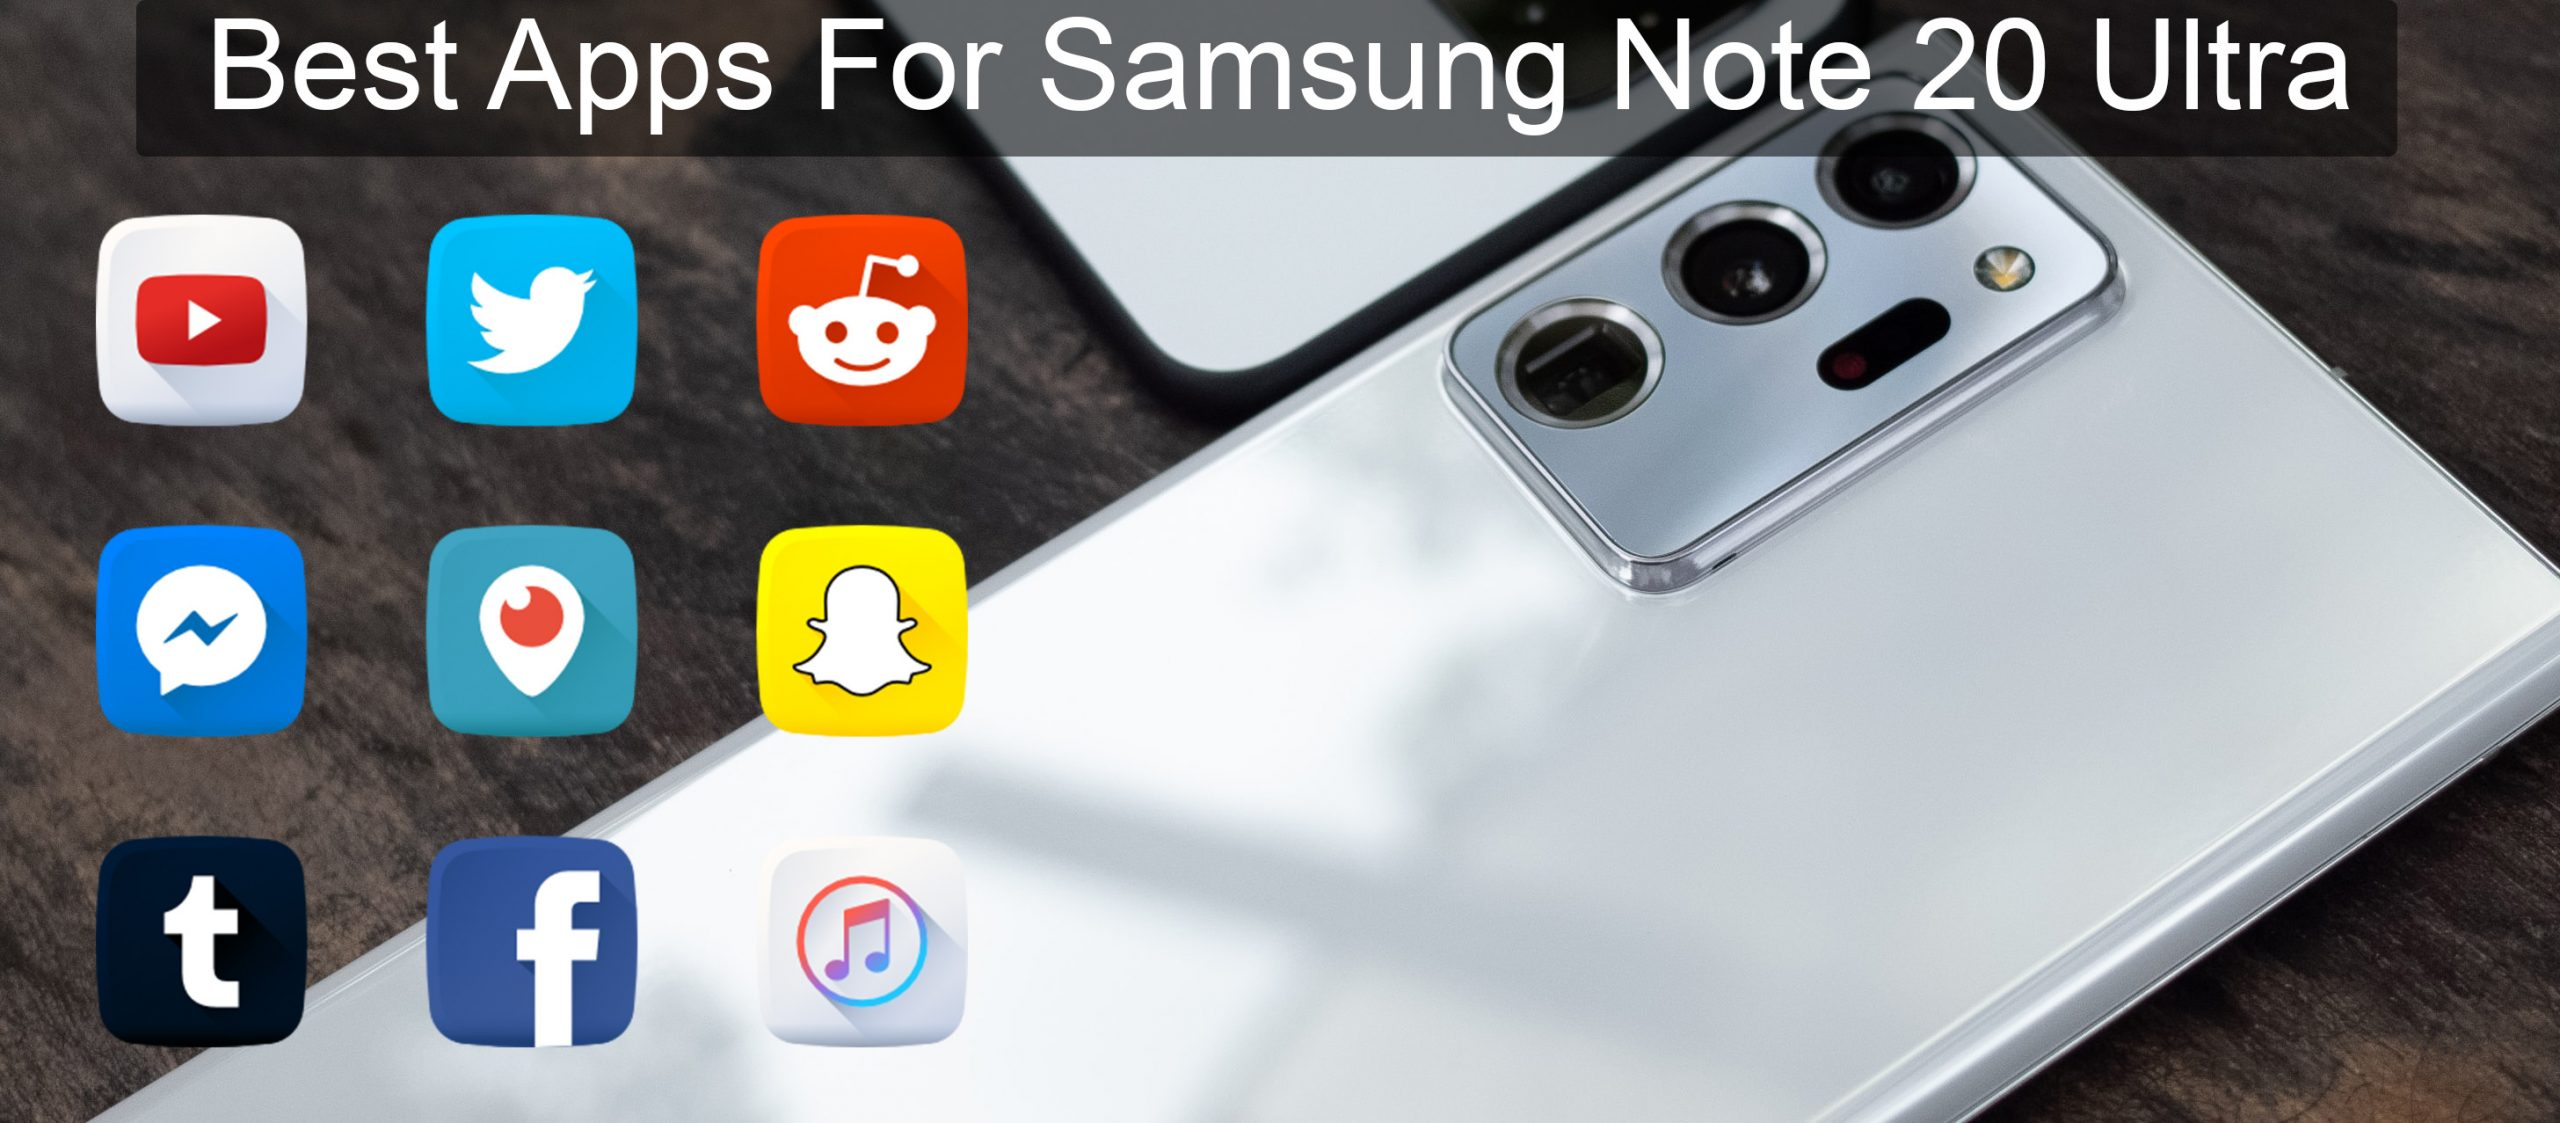 Top 6 Best Apps For Samsung Galaxy Note 20 Ultra